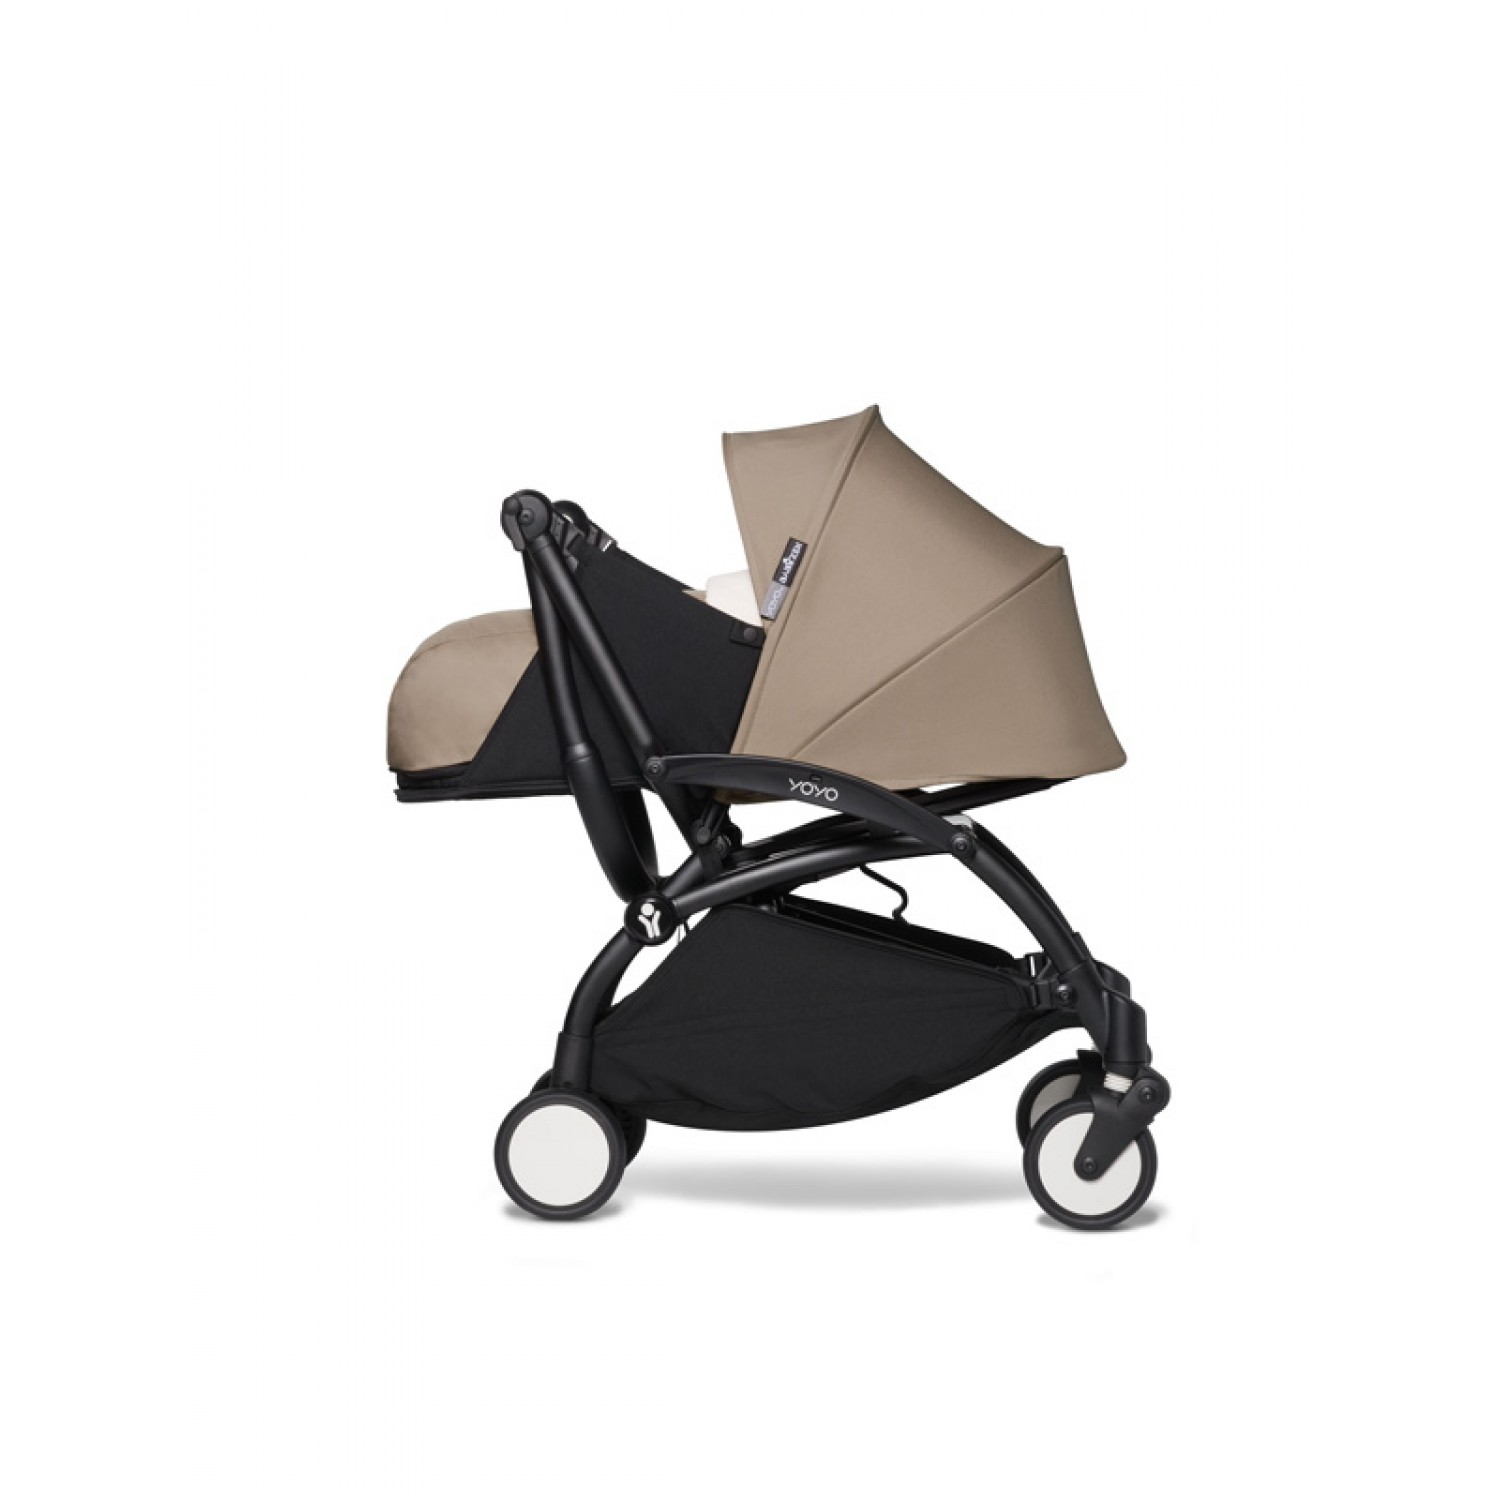 BABYZEN stroller YOYO2 0+ | Black Chassis Taupe